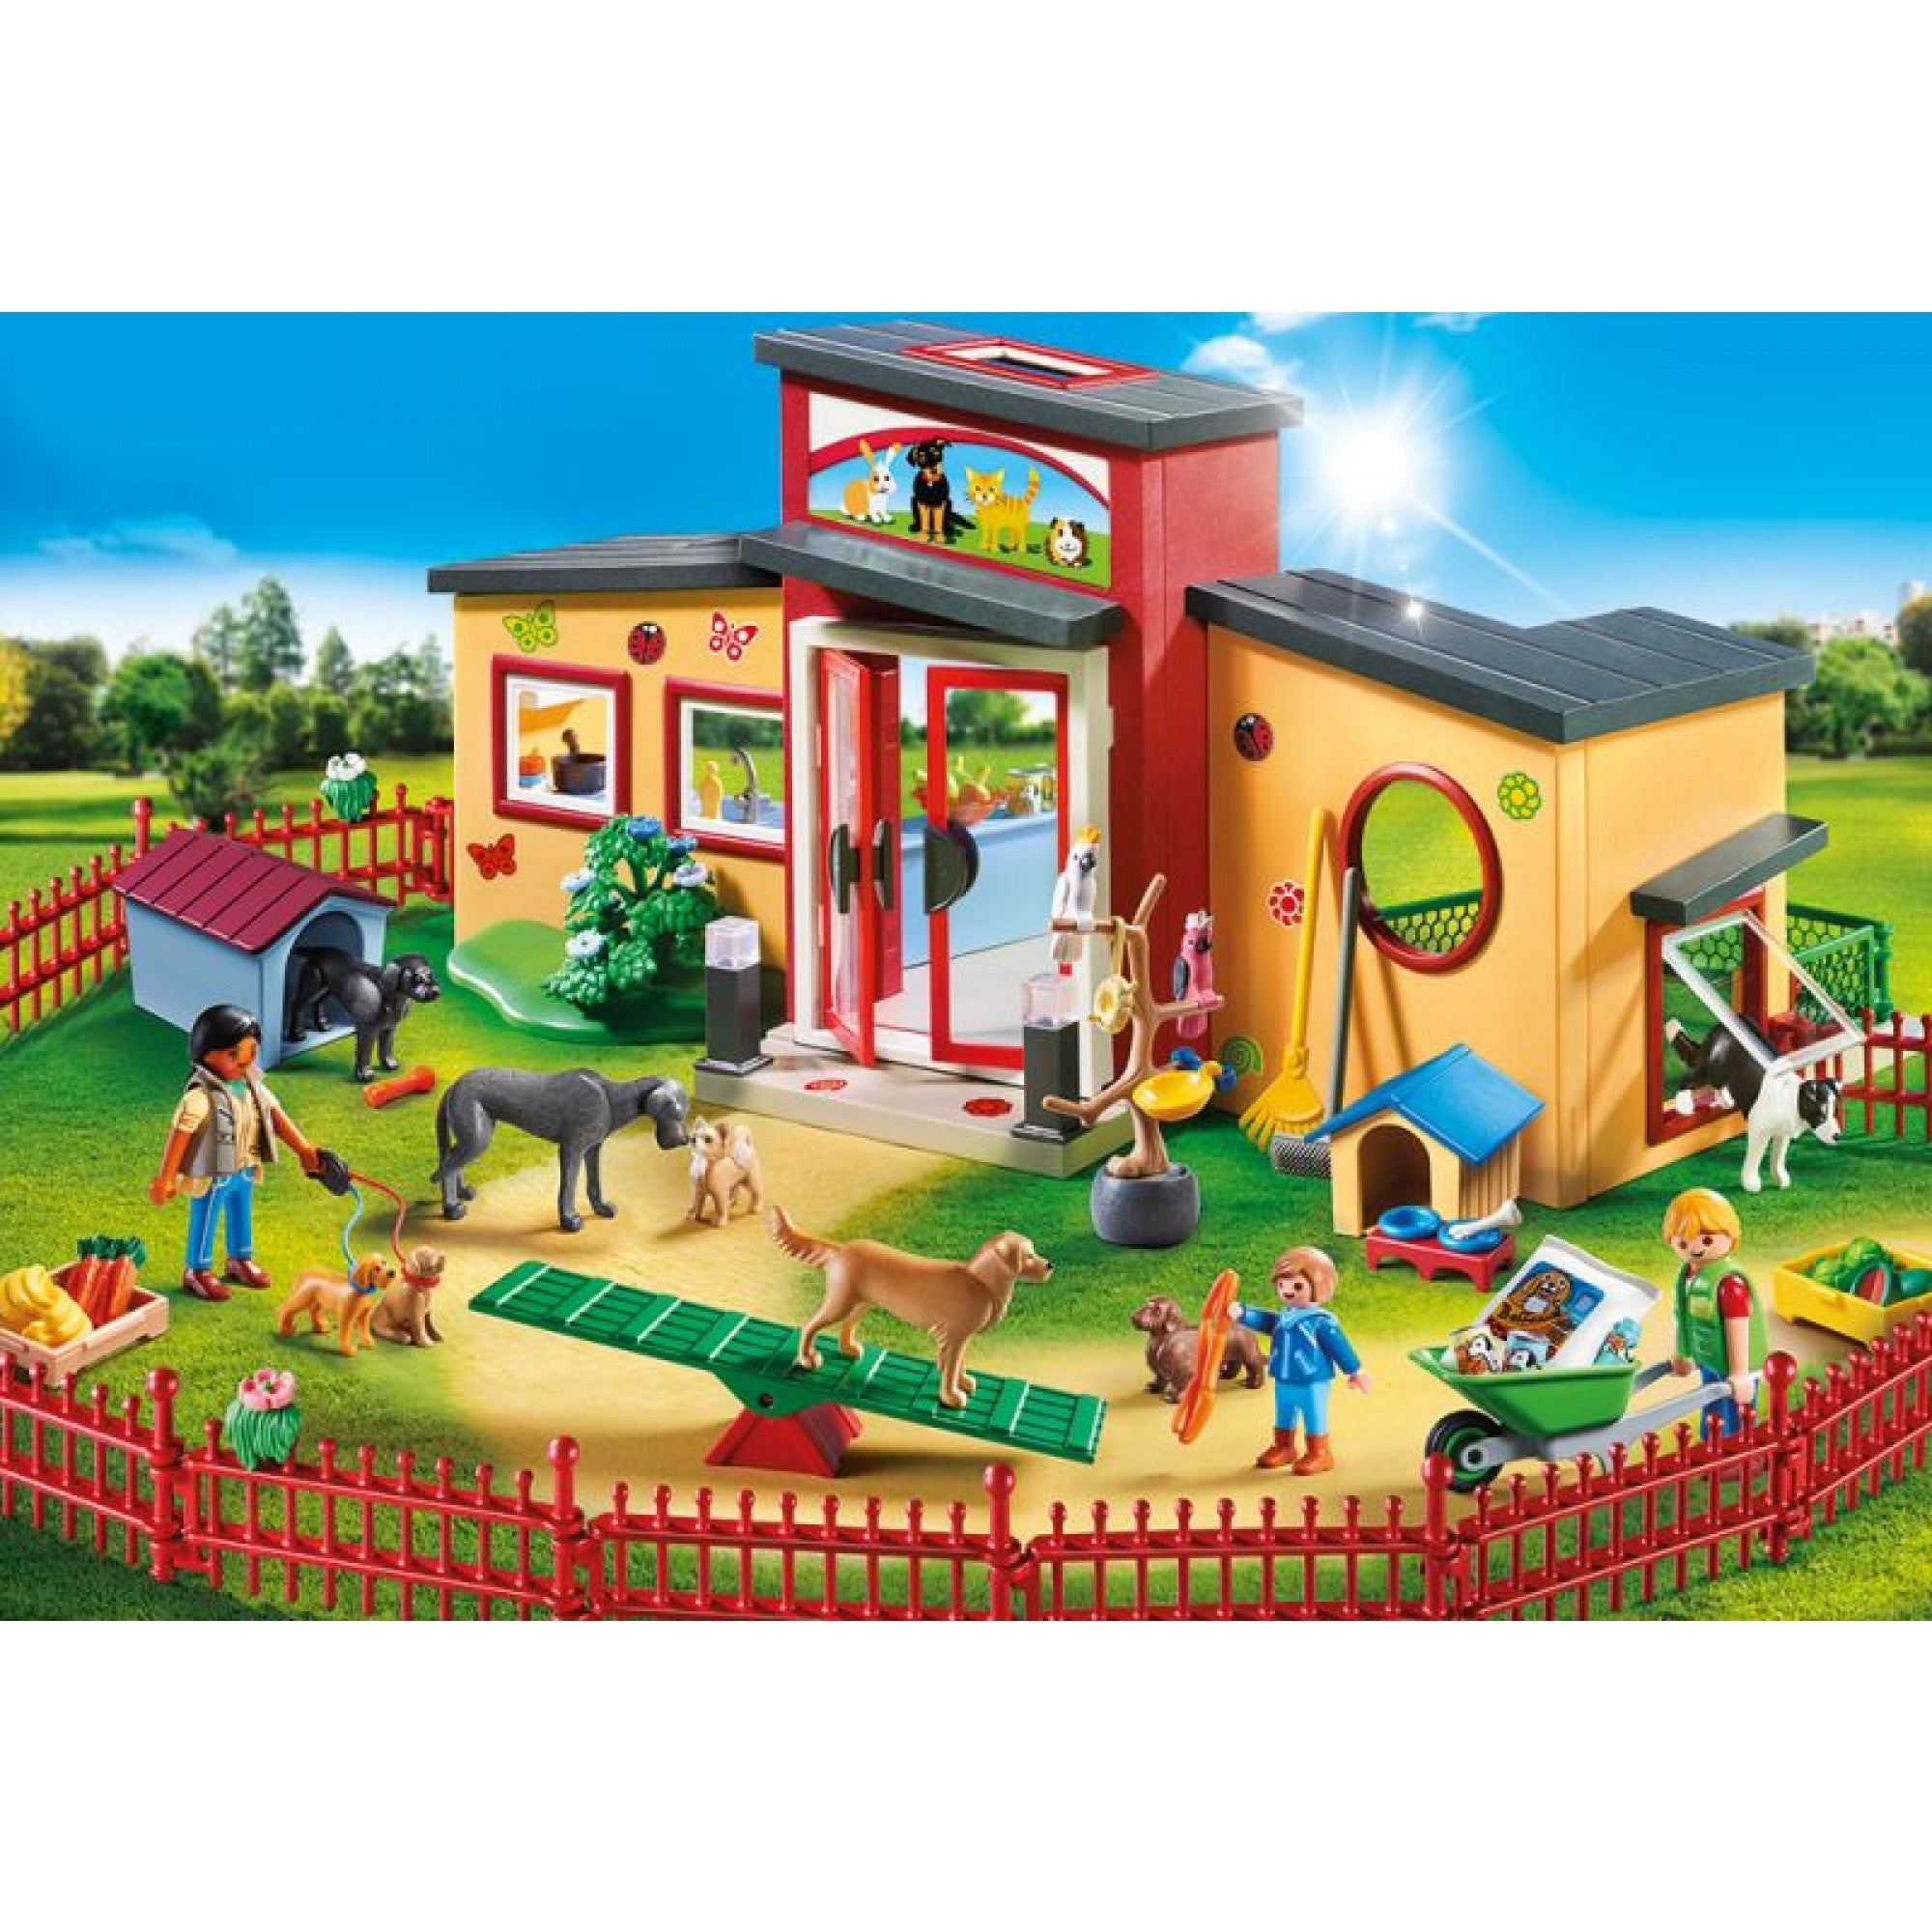 Tiny Paws Pet Hotel - Playmobil